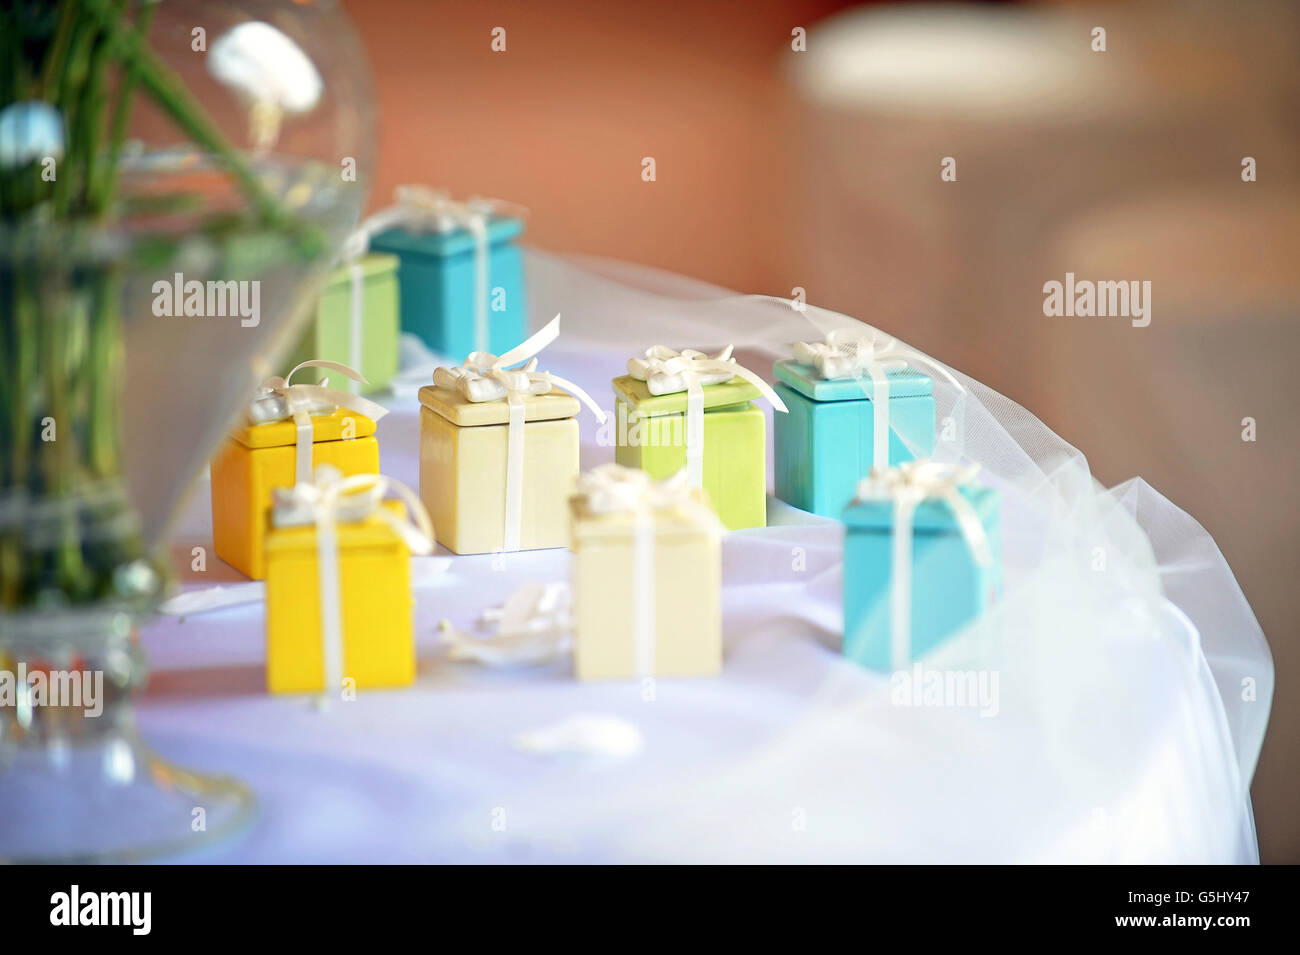 Brightly colorful little party favors in the form of decorative gift boxes - Stock Image